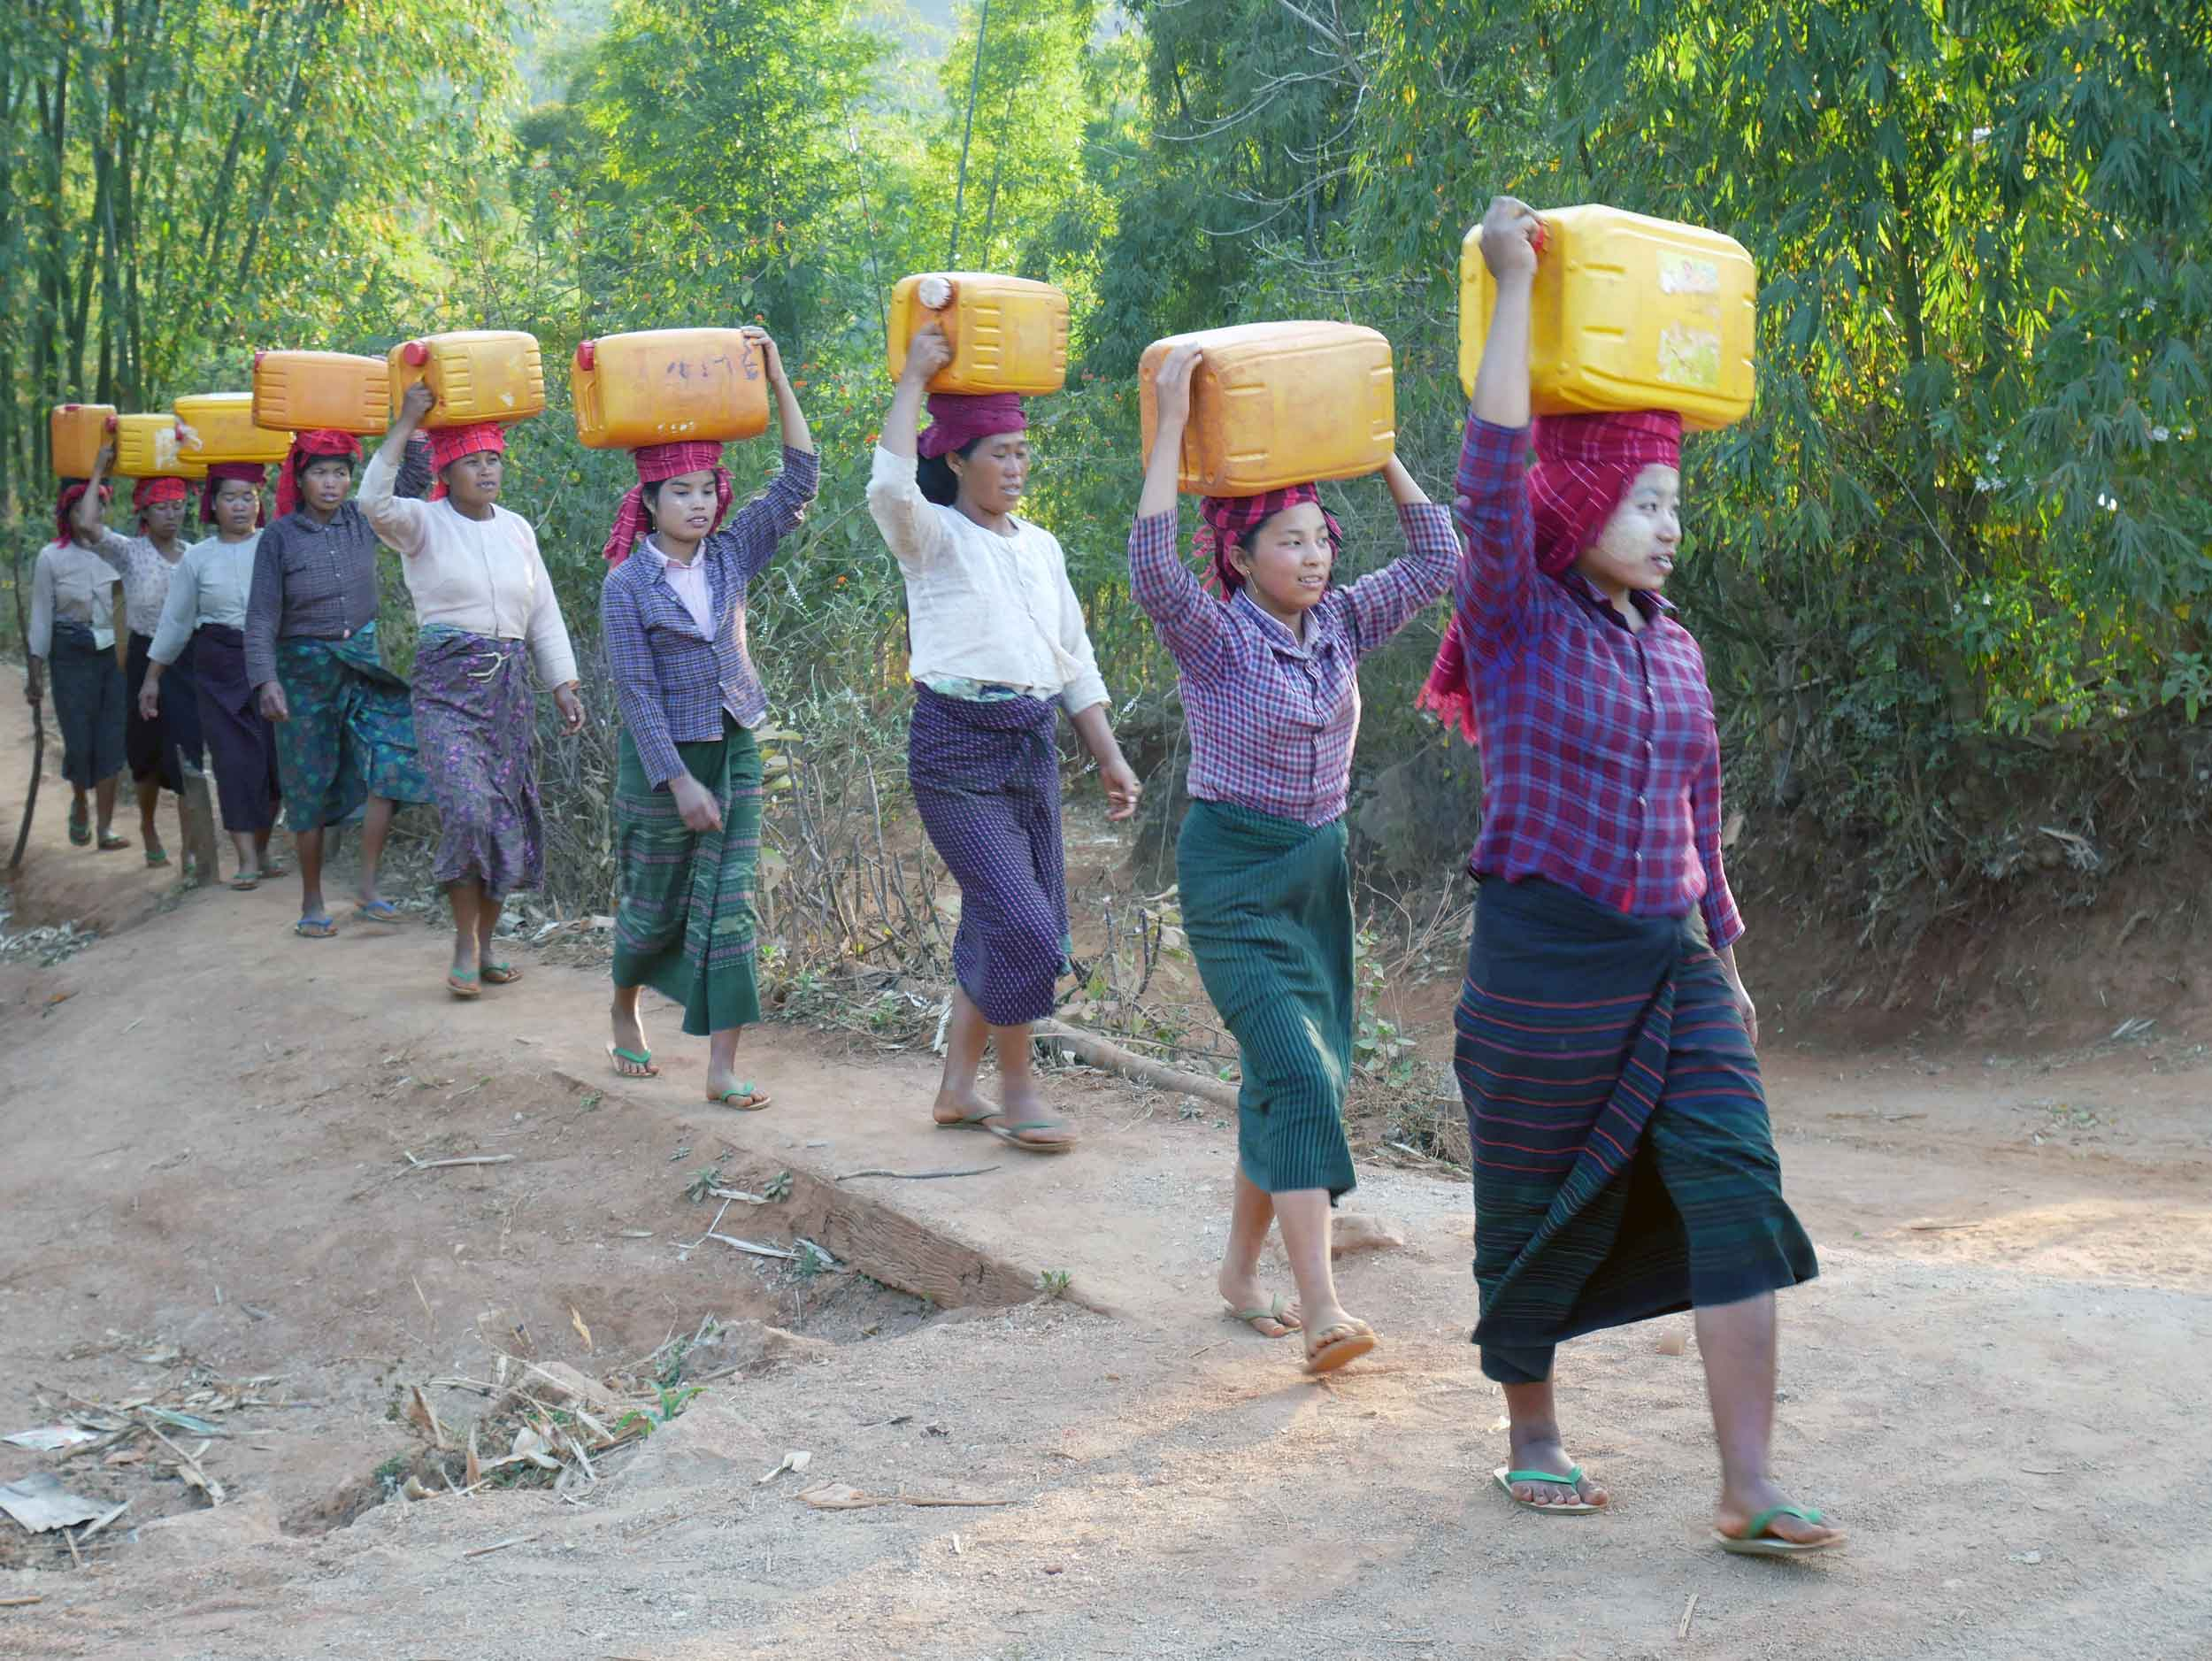 After a rest, we departed the village for a short hike to watch sunset, and en route, we passed the local women returning with water (Feb 20).